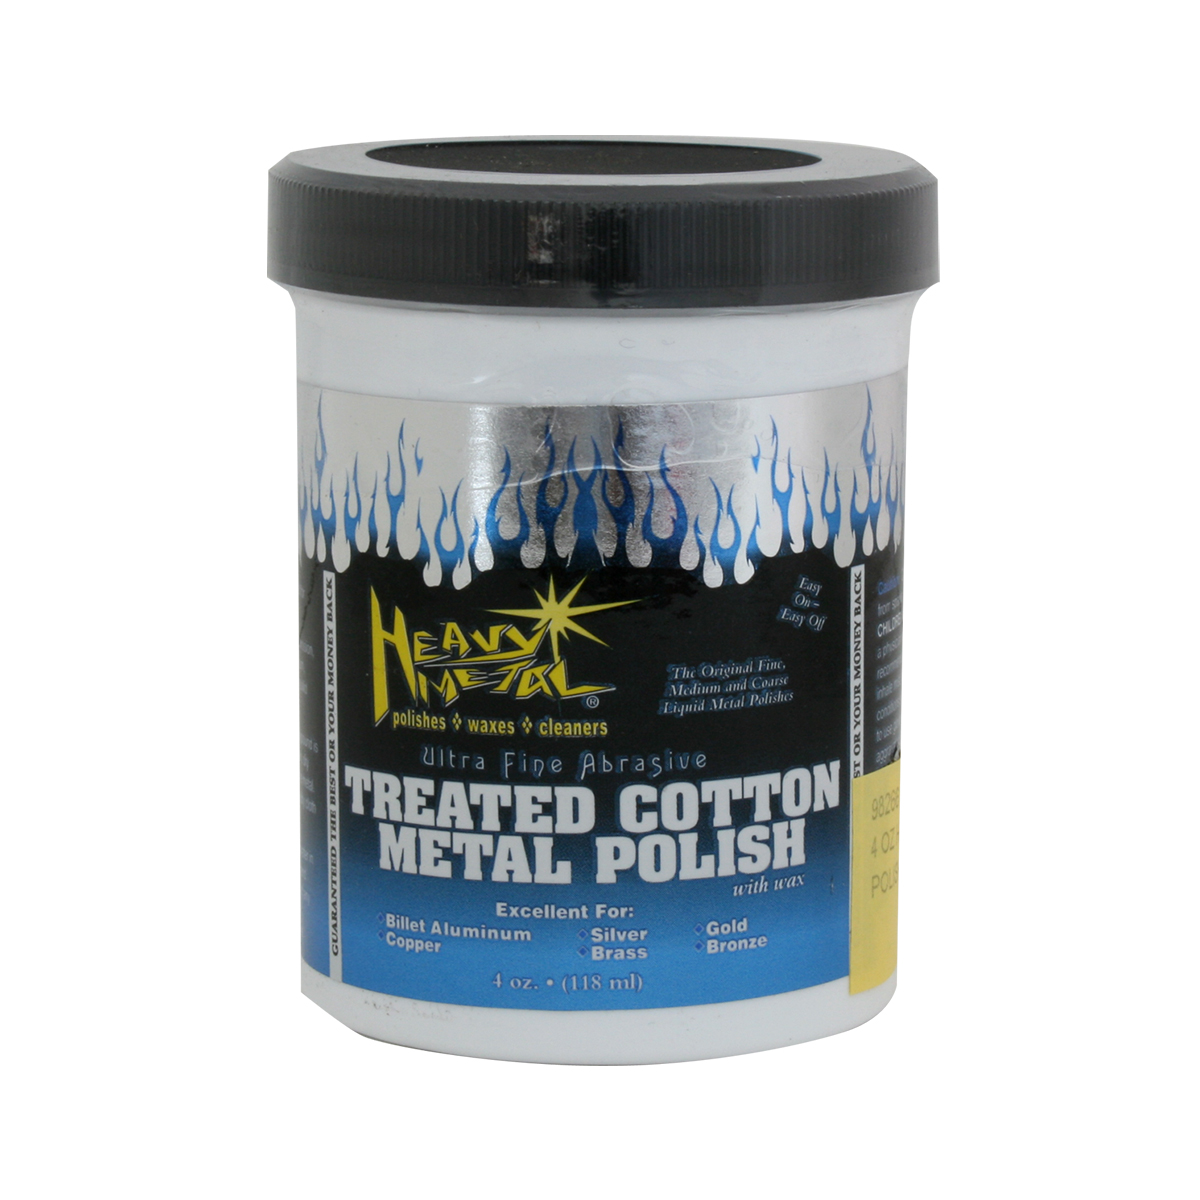 Heavy Metal Polish White Cotton